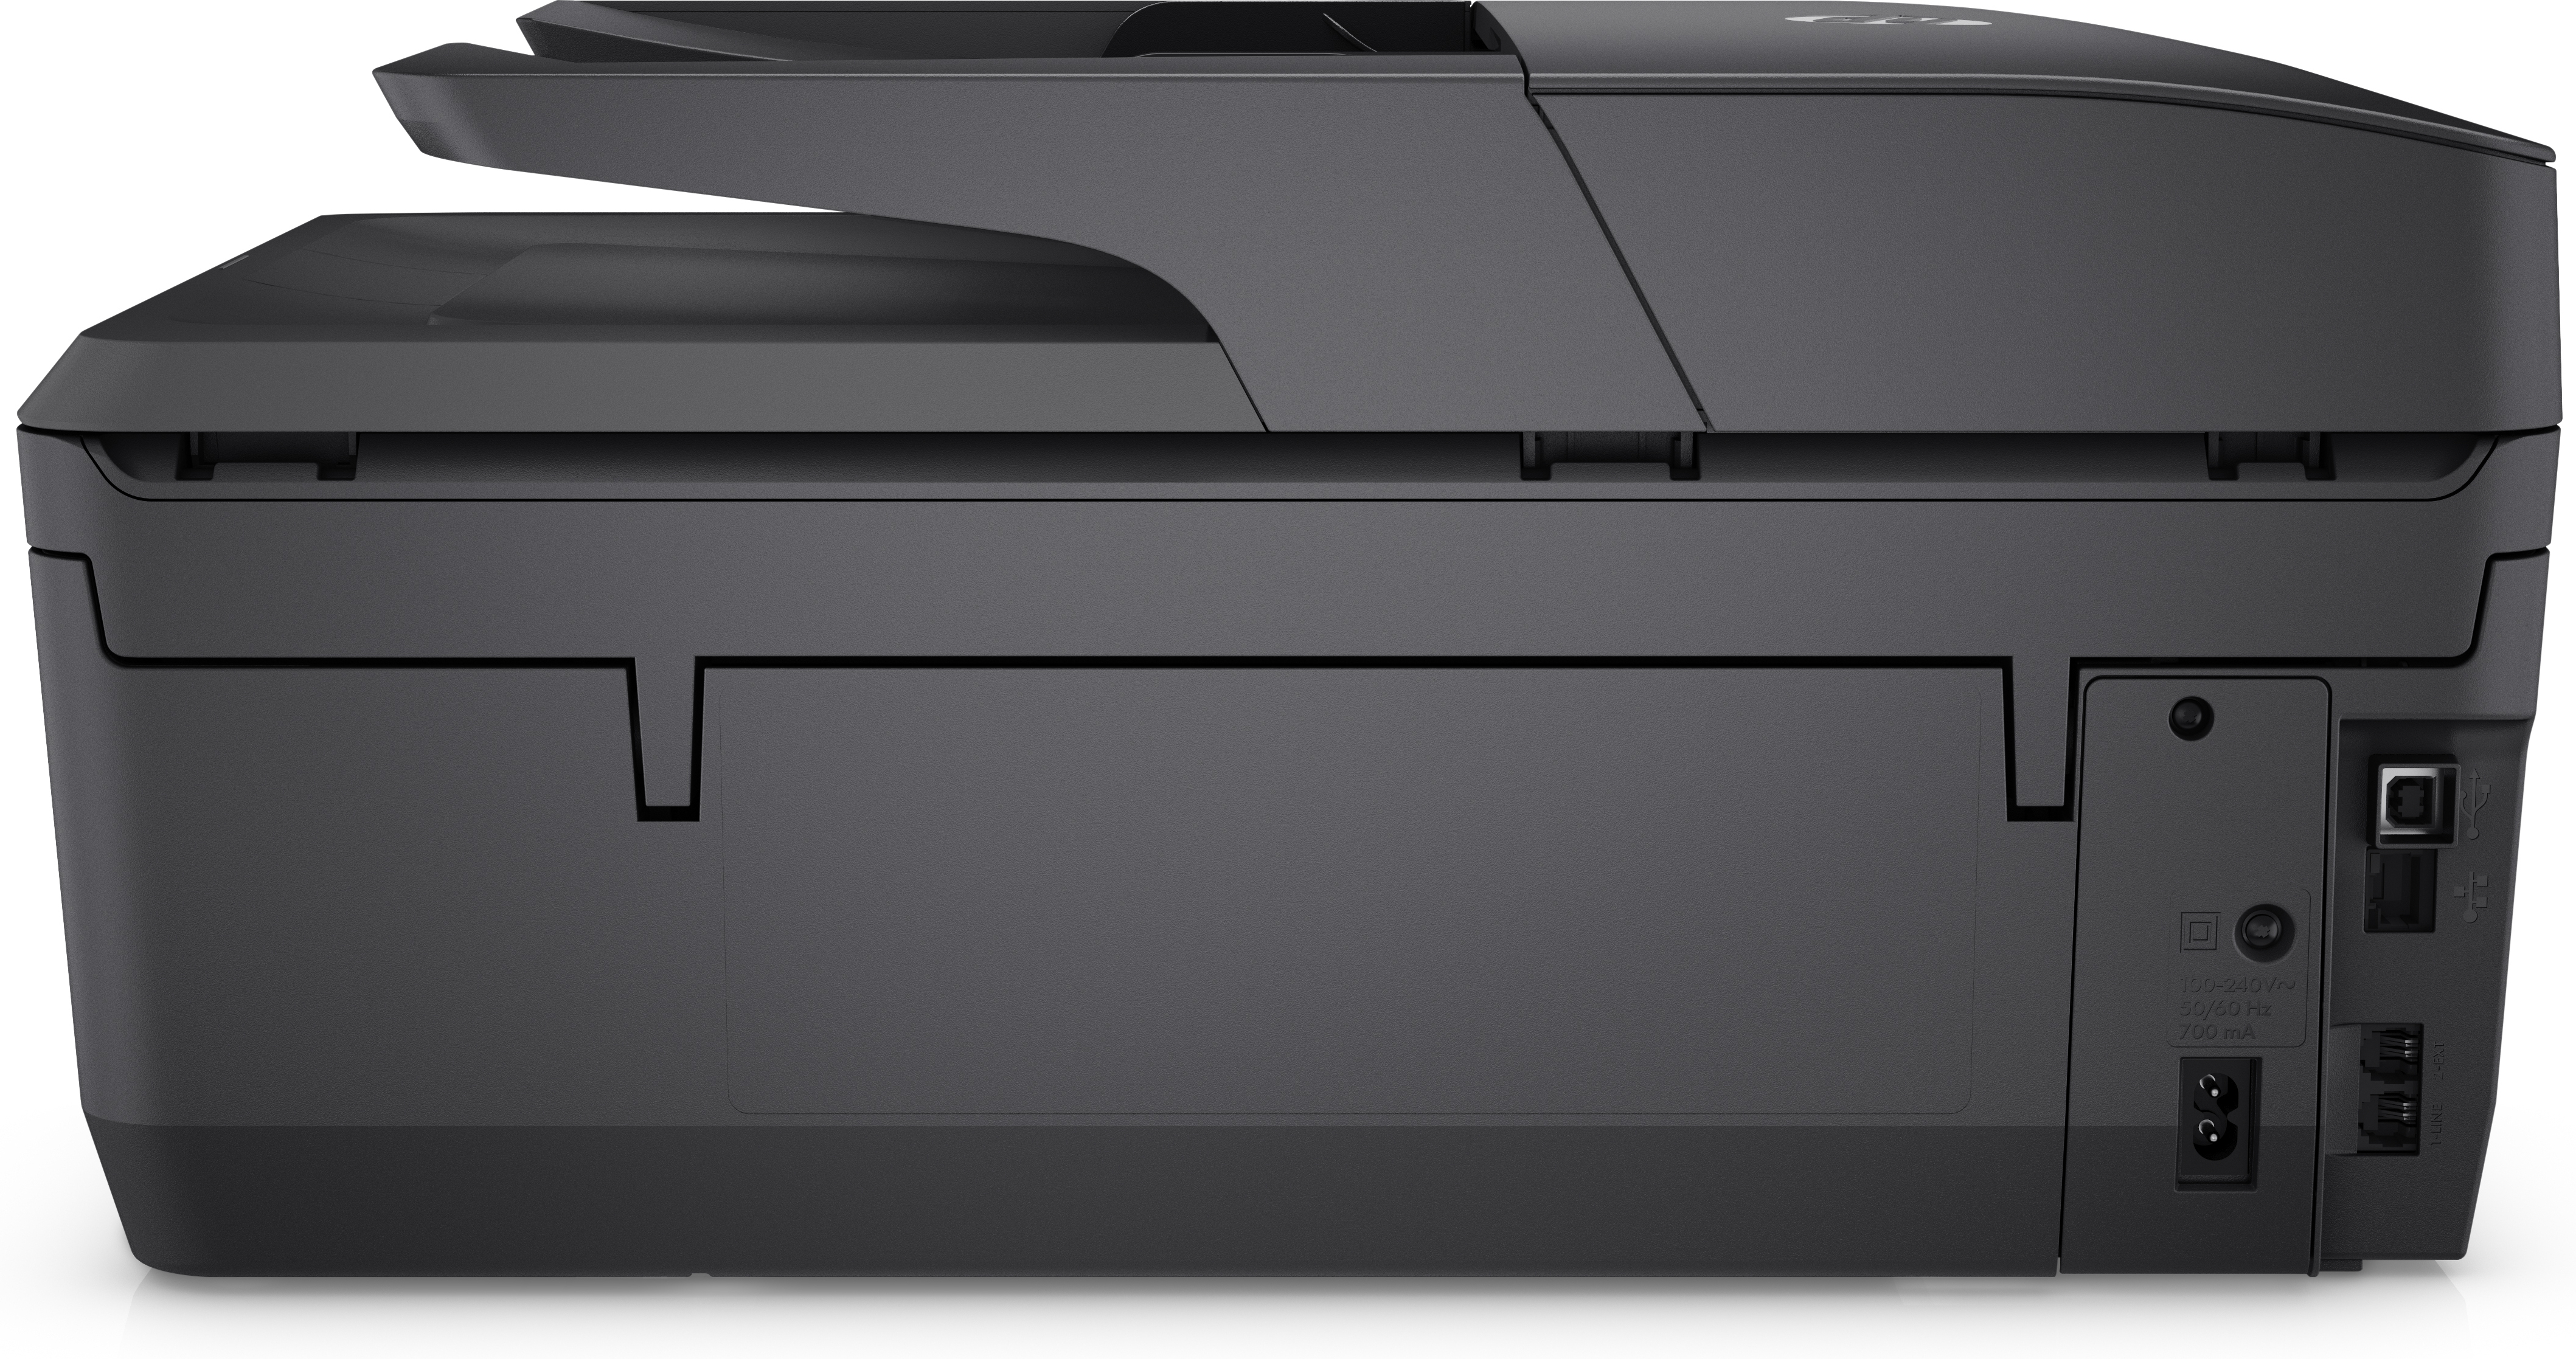 hp officejet pro 6970 t0f33a abu all in one wifi. Black Bedroom Furniture Sets. Home Design Ideas